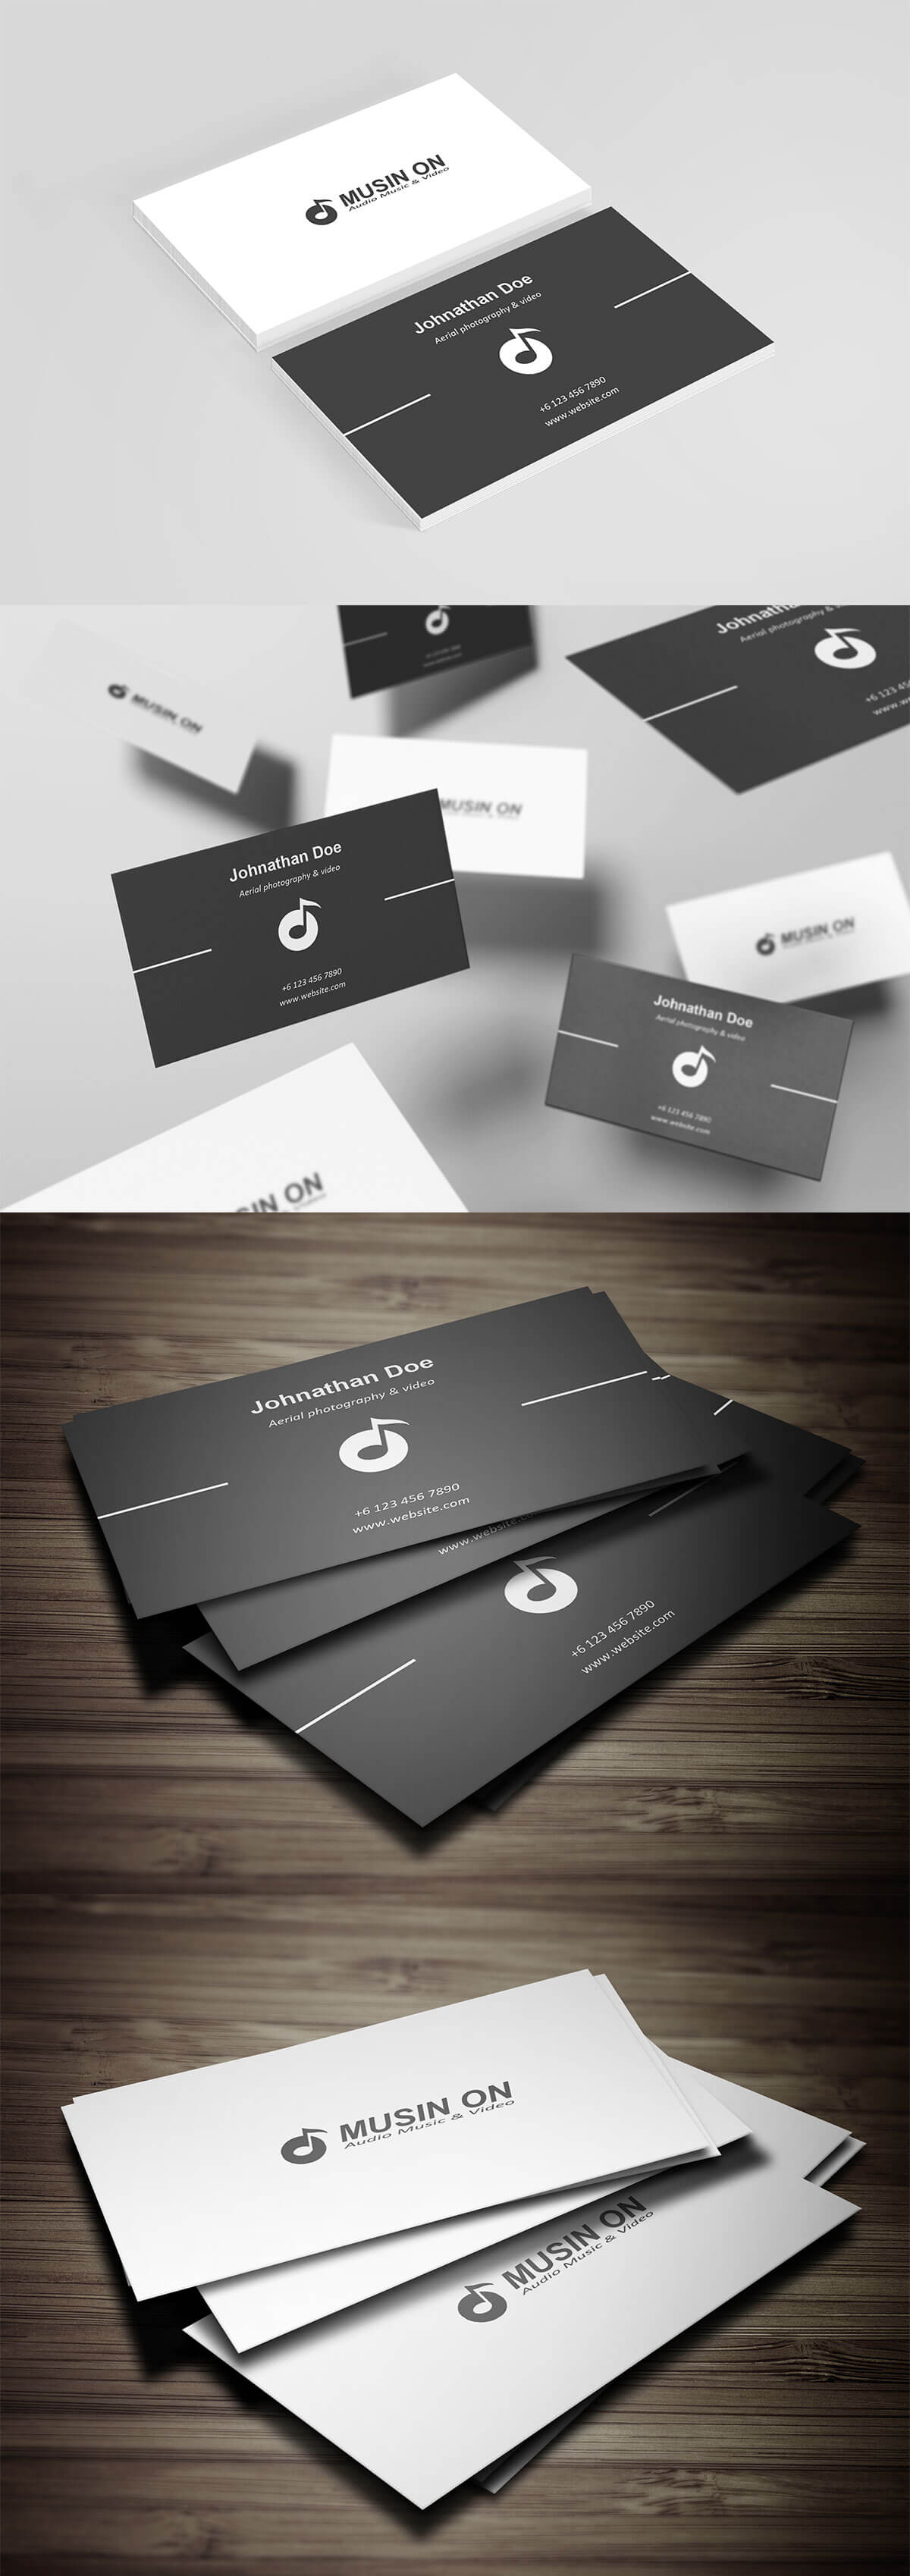 Free retro business card template creativetacos free retro business card template cheaphphosting Images